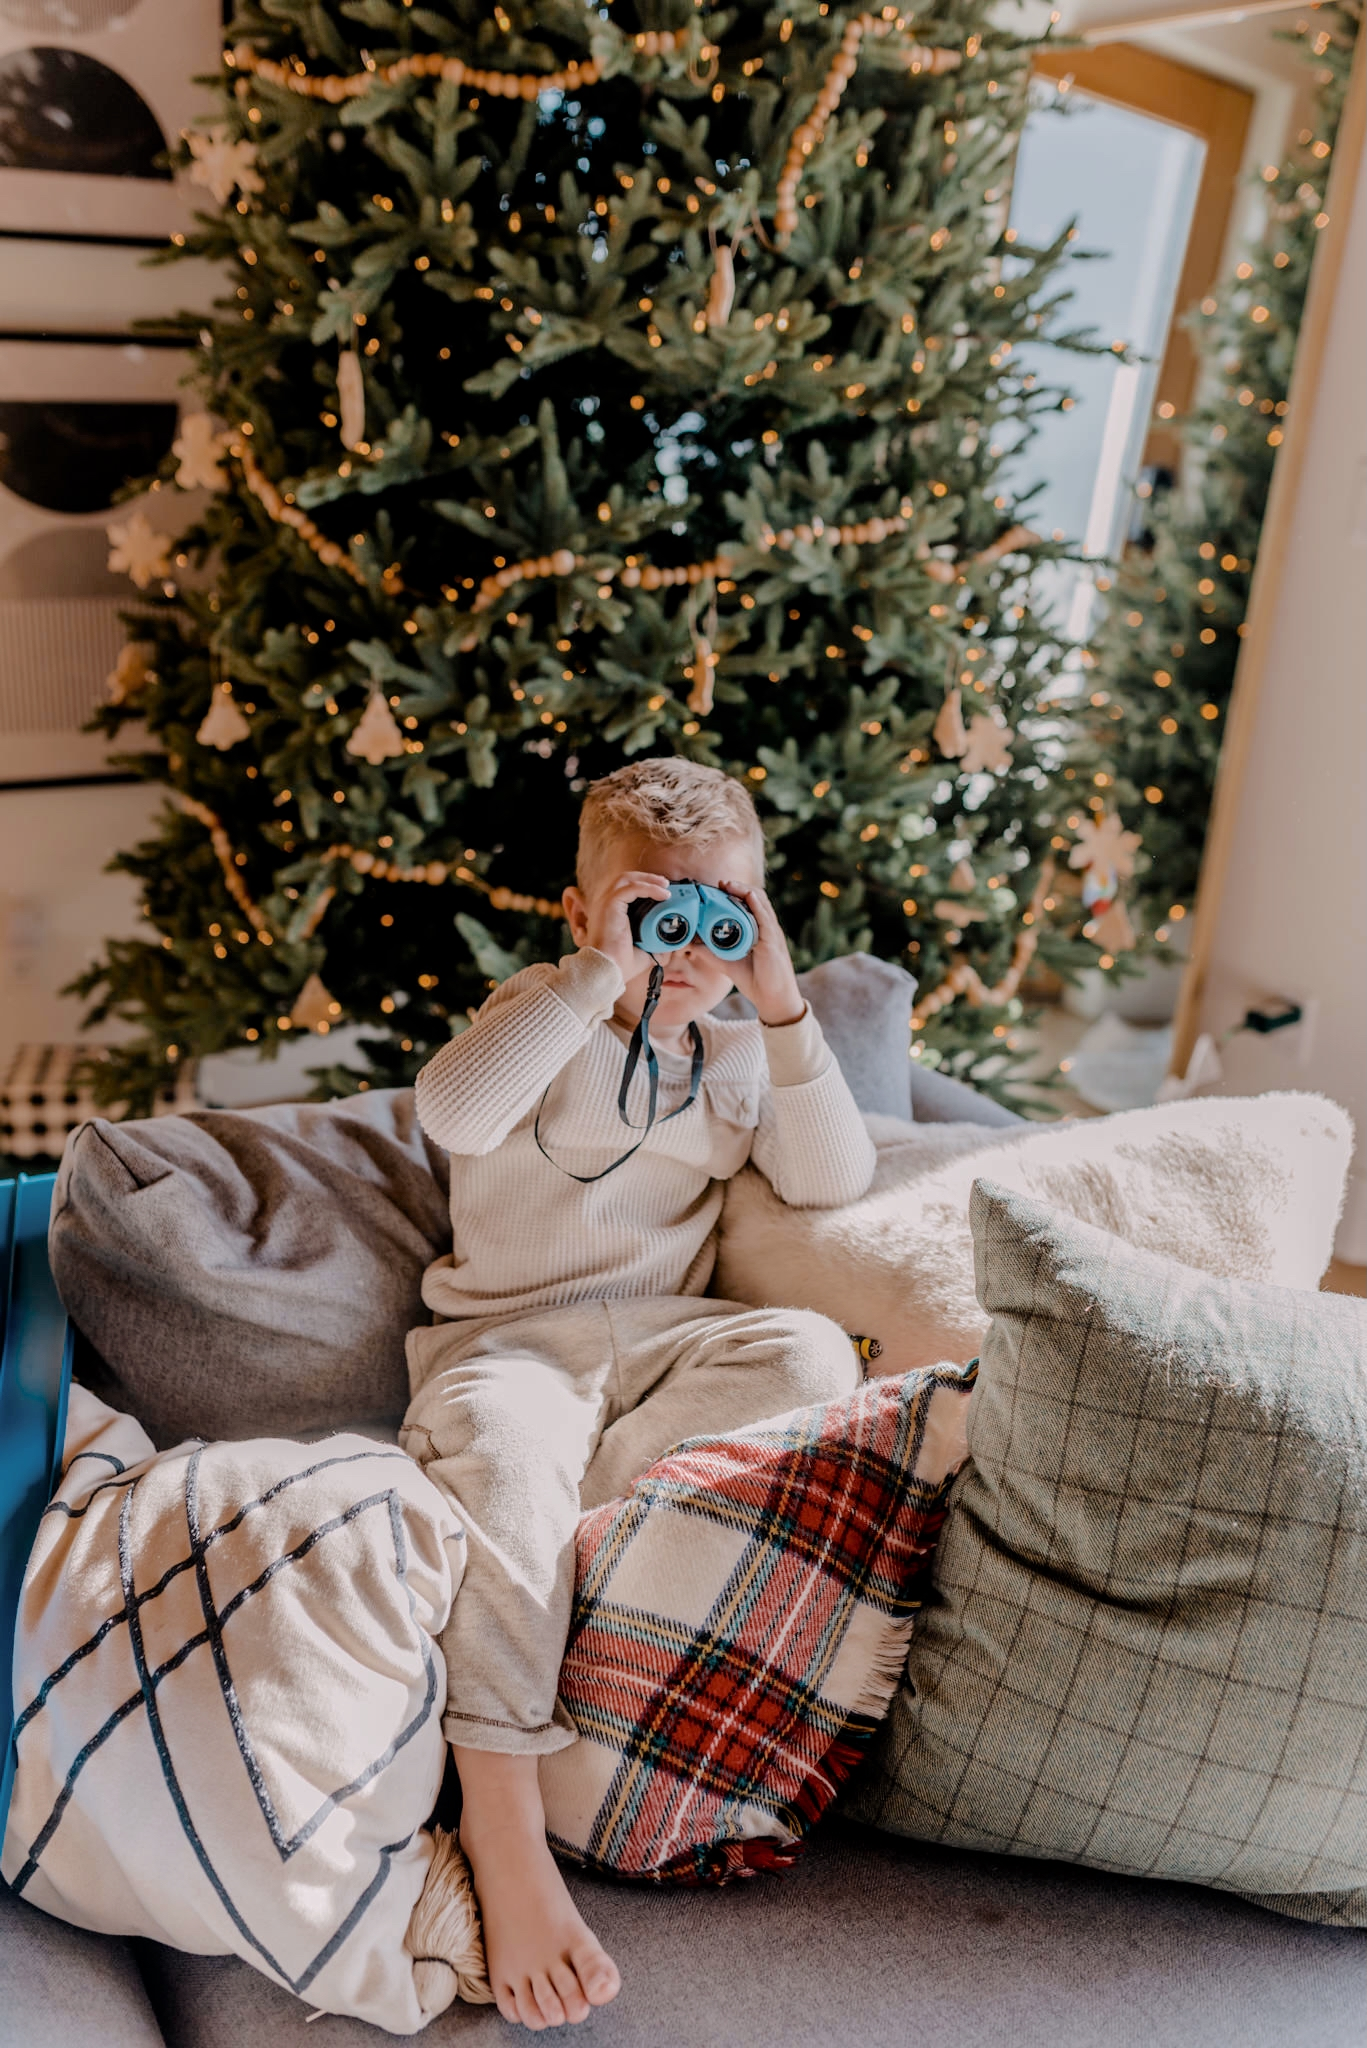 24 PRESCHOOLER GIFTS YOUR 3 TO 5 YEAR OLDS WILL LOVE featured by top San Diego lifestyle blogger, Navy Grace |Preschooler Gifts by popular San Diego lifestyle blog, Navy Grace: image of a young boy looking through some binoculars.